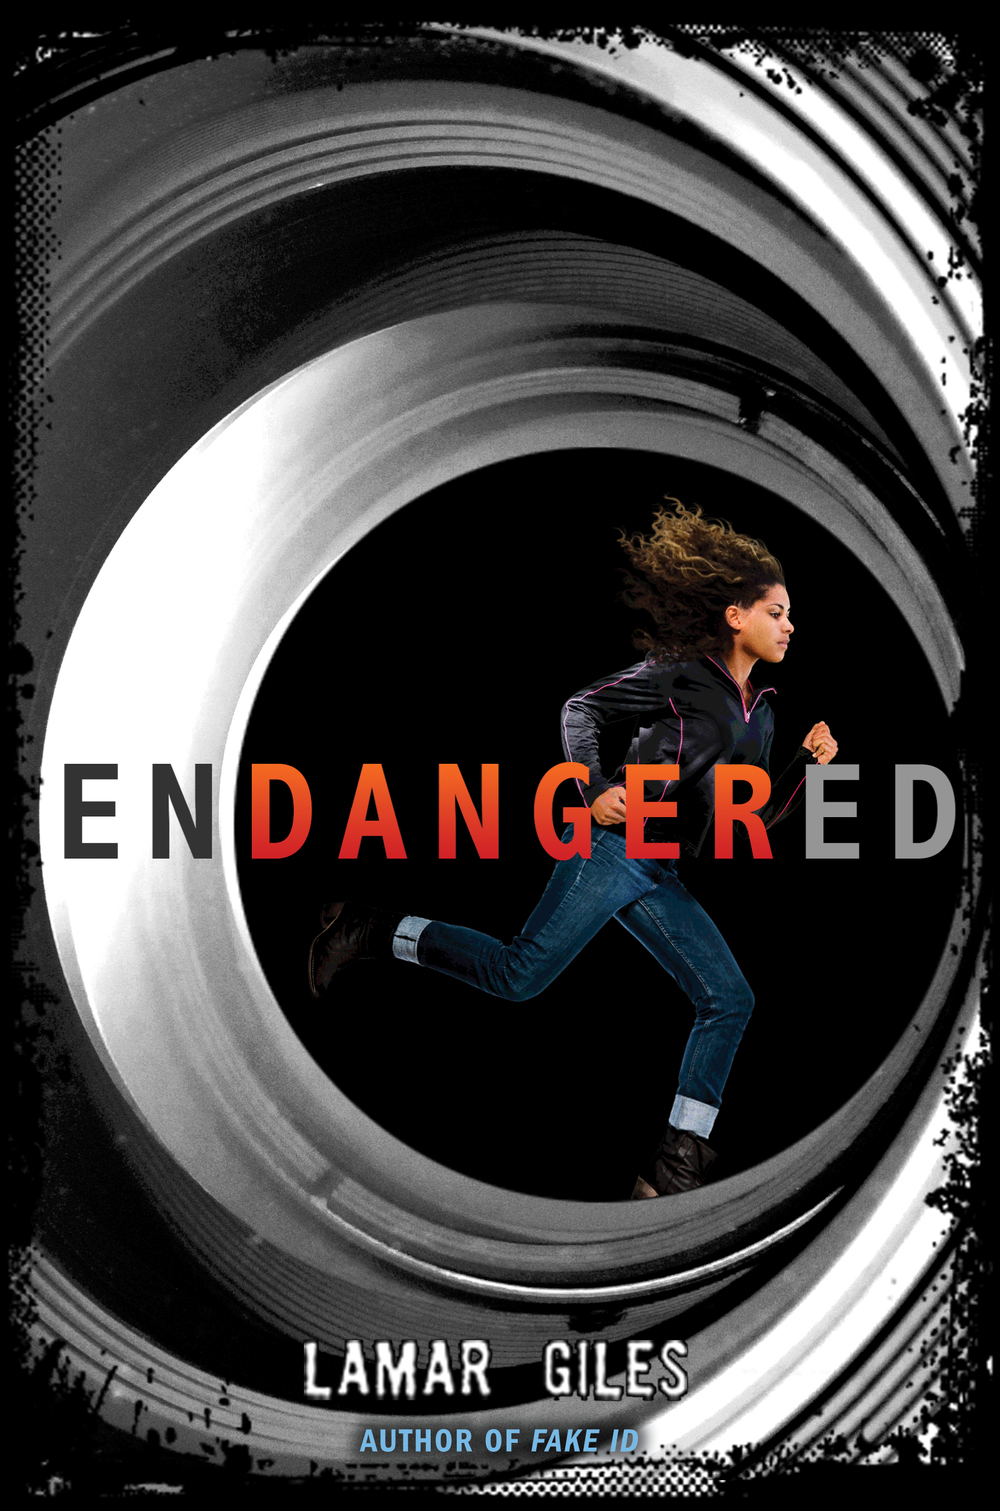 Endangered, by Lamar Giles